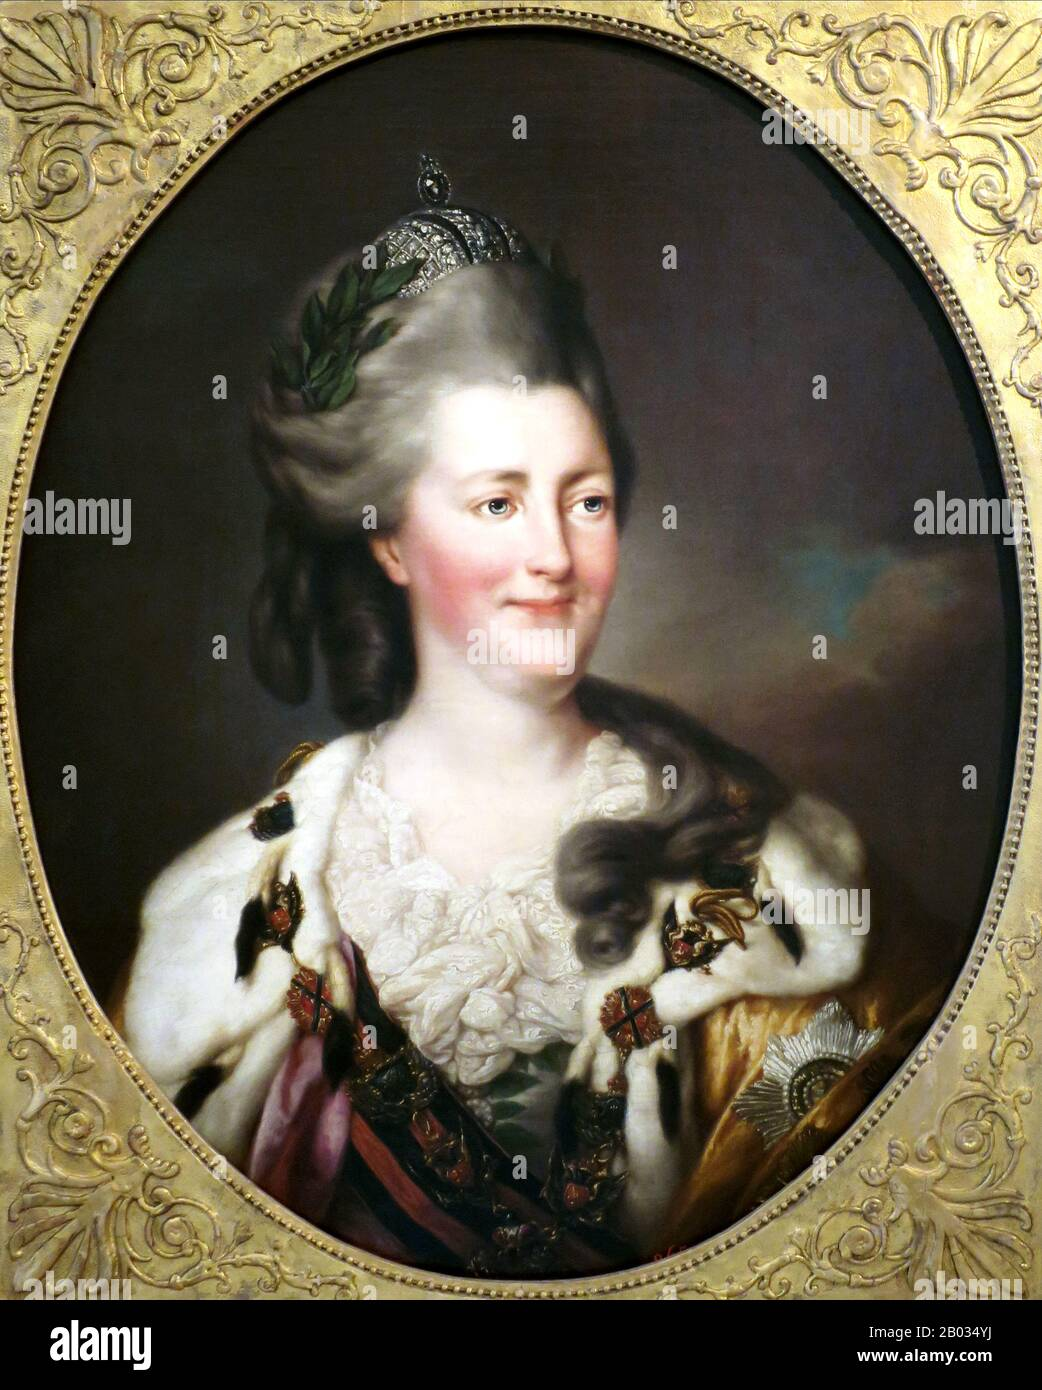 Catherine II of Russia (Russian: Yekaterina Alekseyevna, 2 May 1729 – 17 November 1796), was the most renowned and the longest-ruling female ruler of Russia, reigning from 1762 until her death in 1796 at the age of 67.  Born in Stettin, Pomerania, Prussia as Sophie Friederike Auguste von Anhalt-Zerbst-Dornburg, she came to power following a coup d'état when her husband, Peter III, was assassinated. Russia was revitalised under her reign, growing larger and stronger than ever and becoming recognised as one of the great powers of Europe. Stock Photo